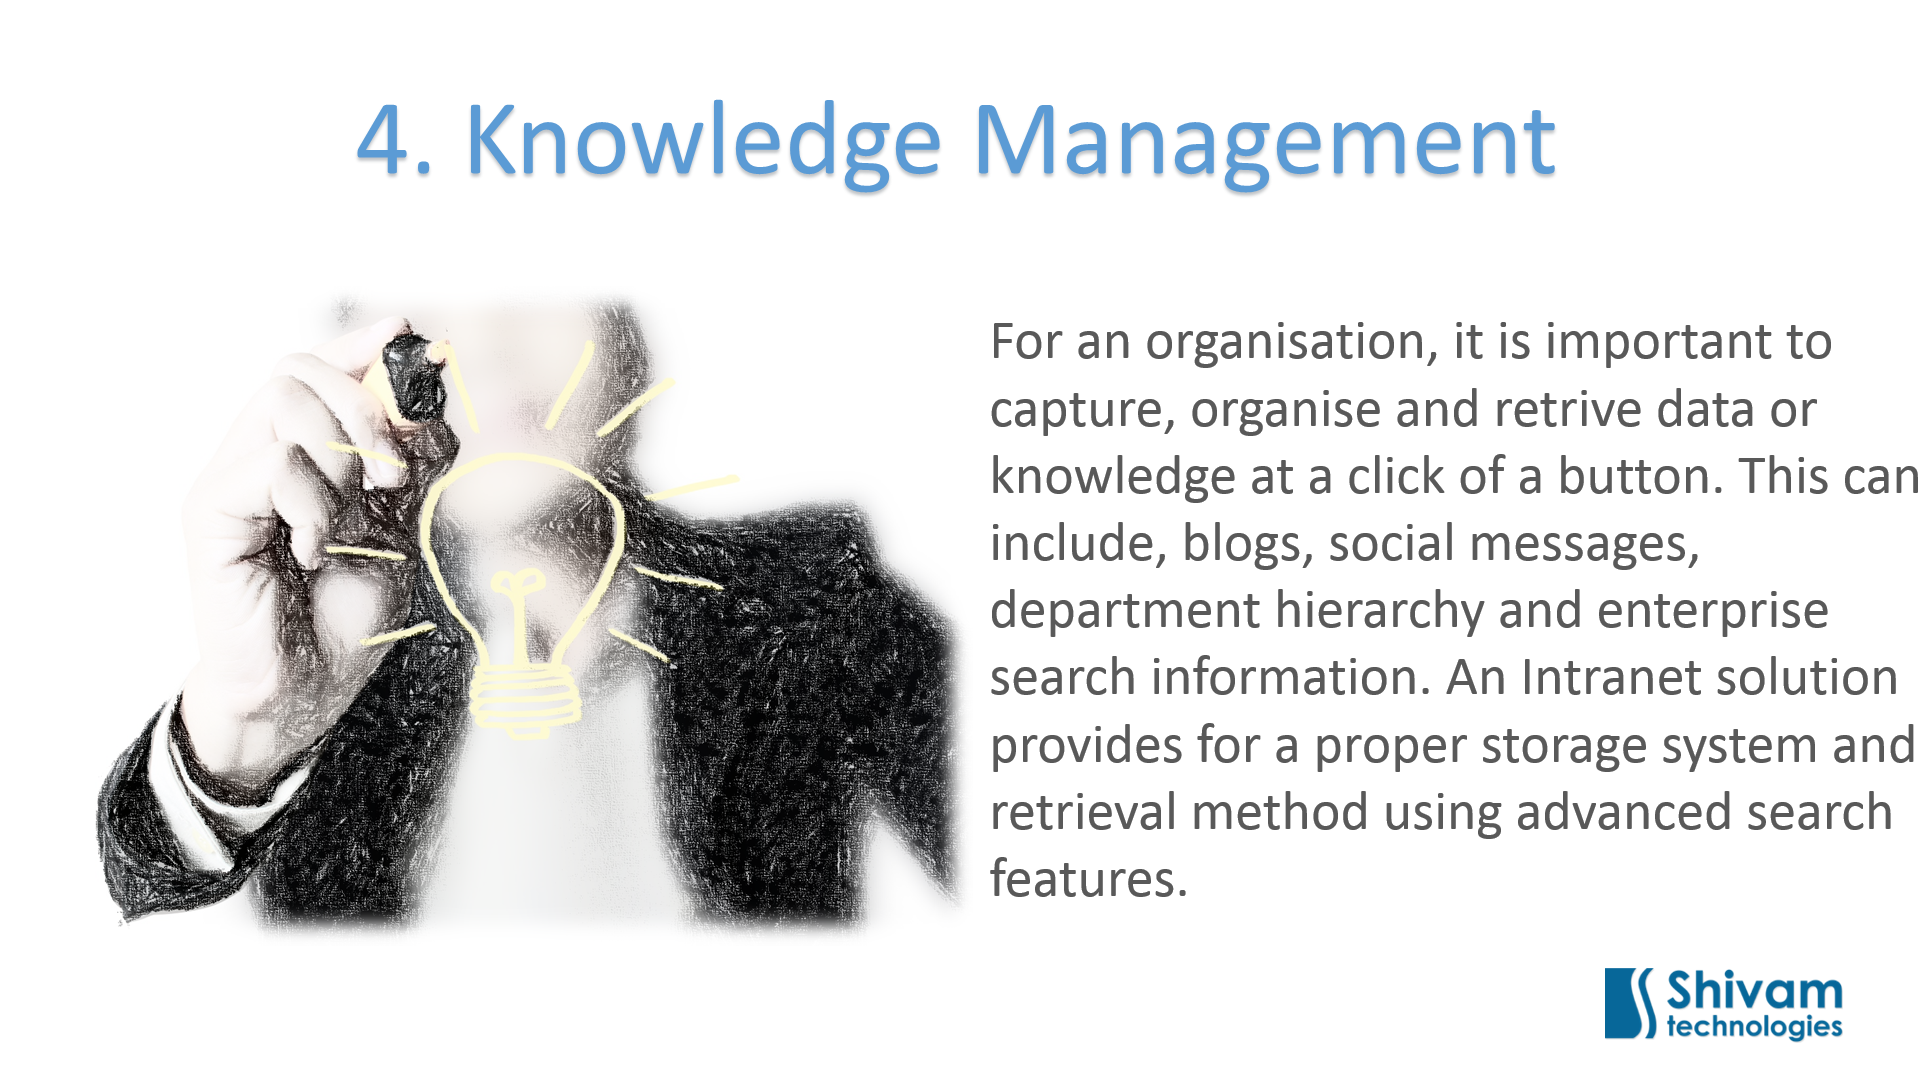 4. Knowledge Management